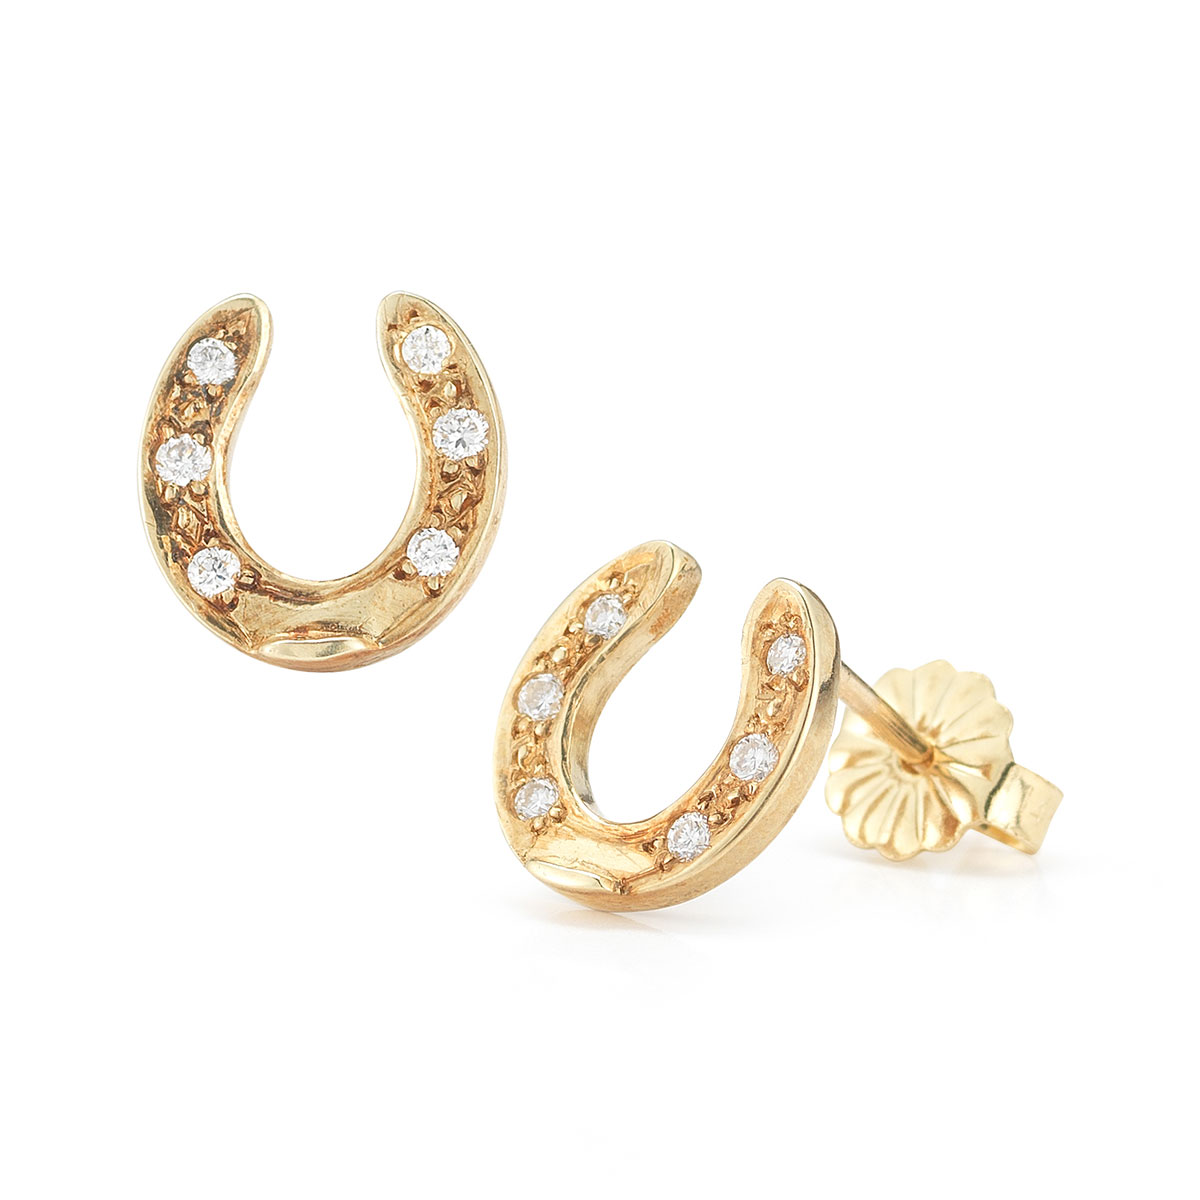 HSER0842 Diamond Horseshoe Earrings